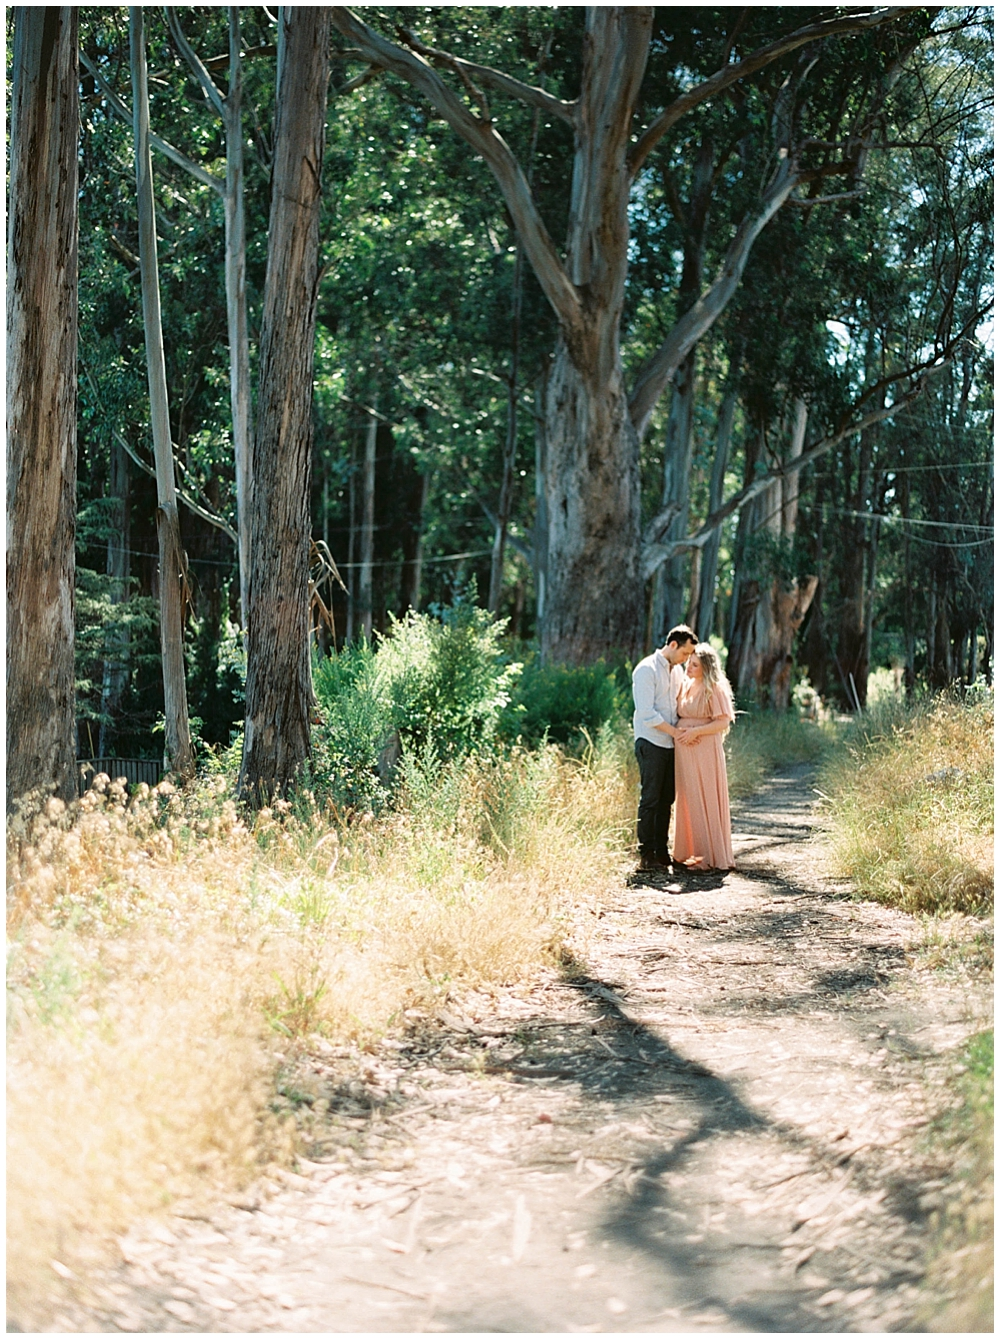 Fine Art Film Wedding Photographer | Sarah Carpenter Photography | California & Seattle | Destinations Worldwide